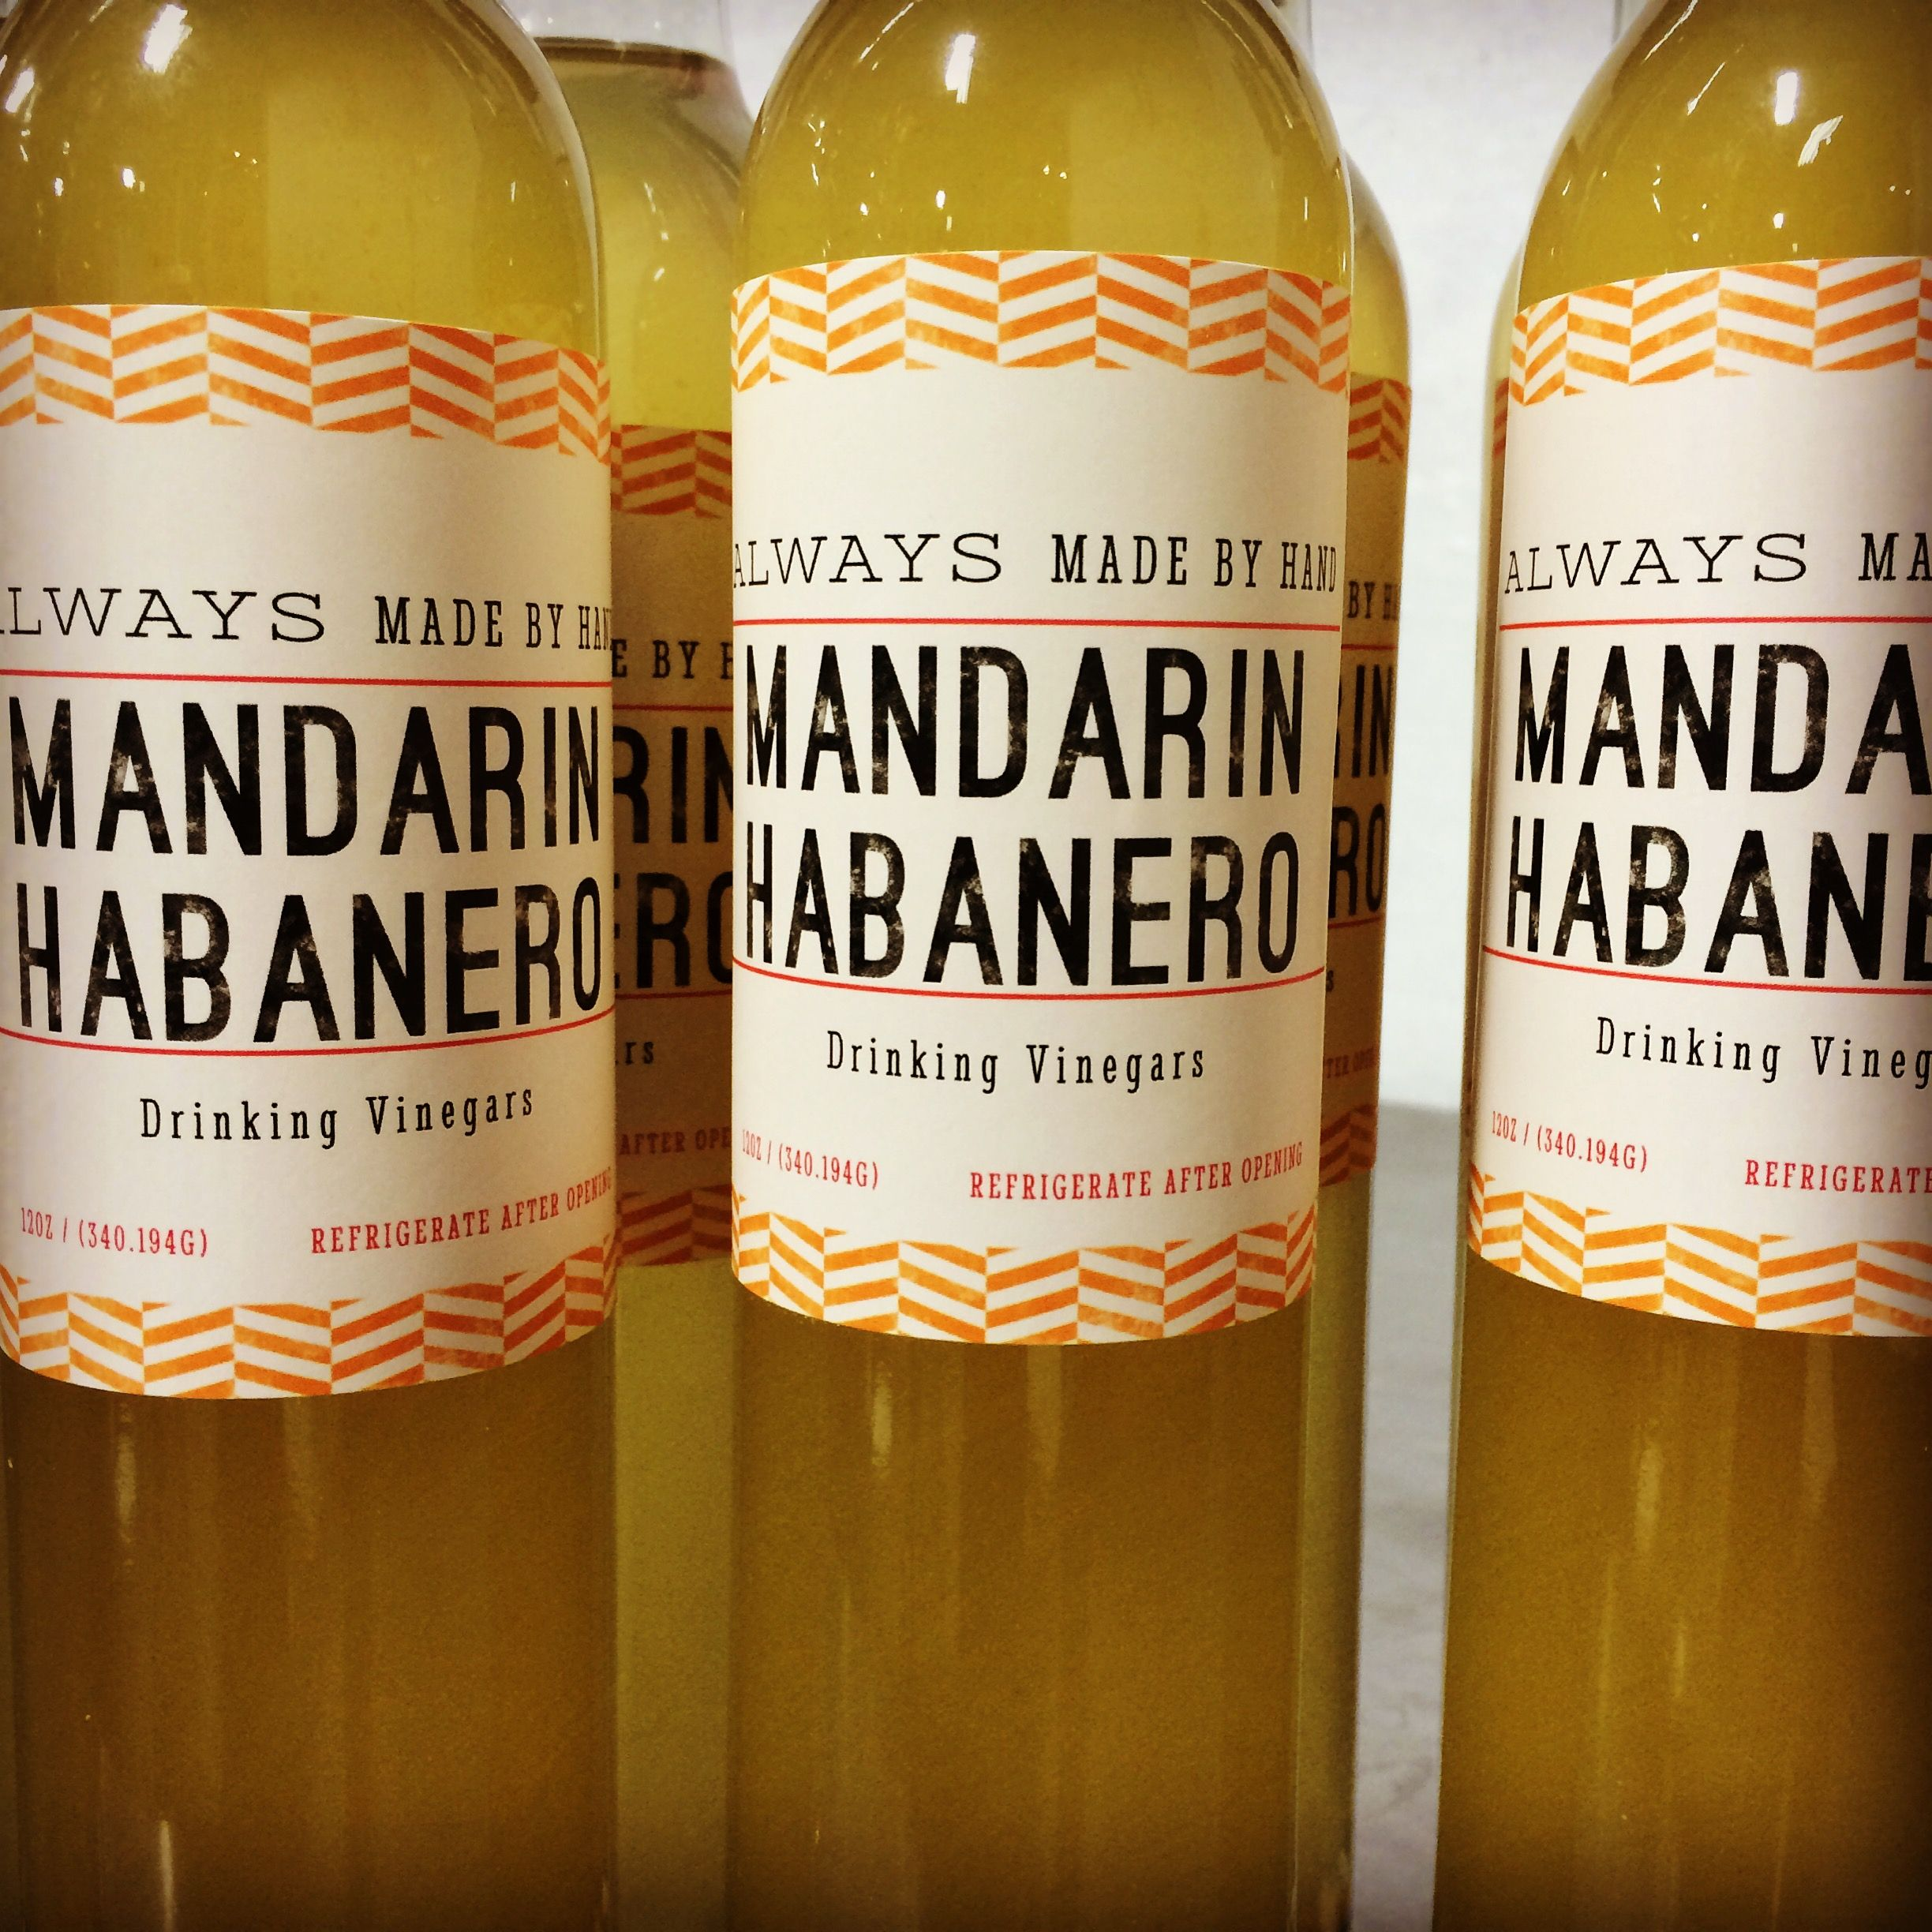 Mandarin Habanero Drinking Vinegars by Grumpy Dog Shrub Co. #drinkingvinegars #shrubs